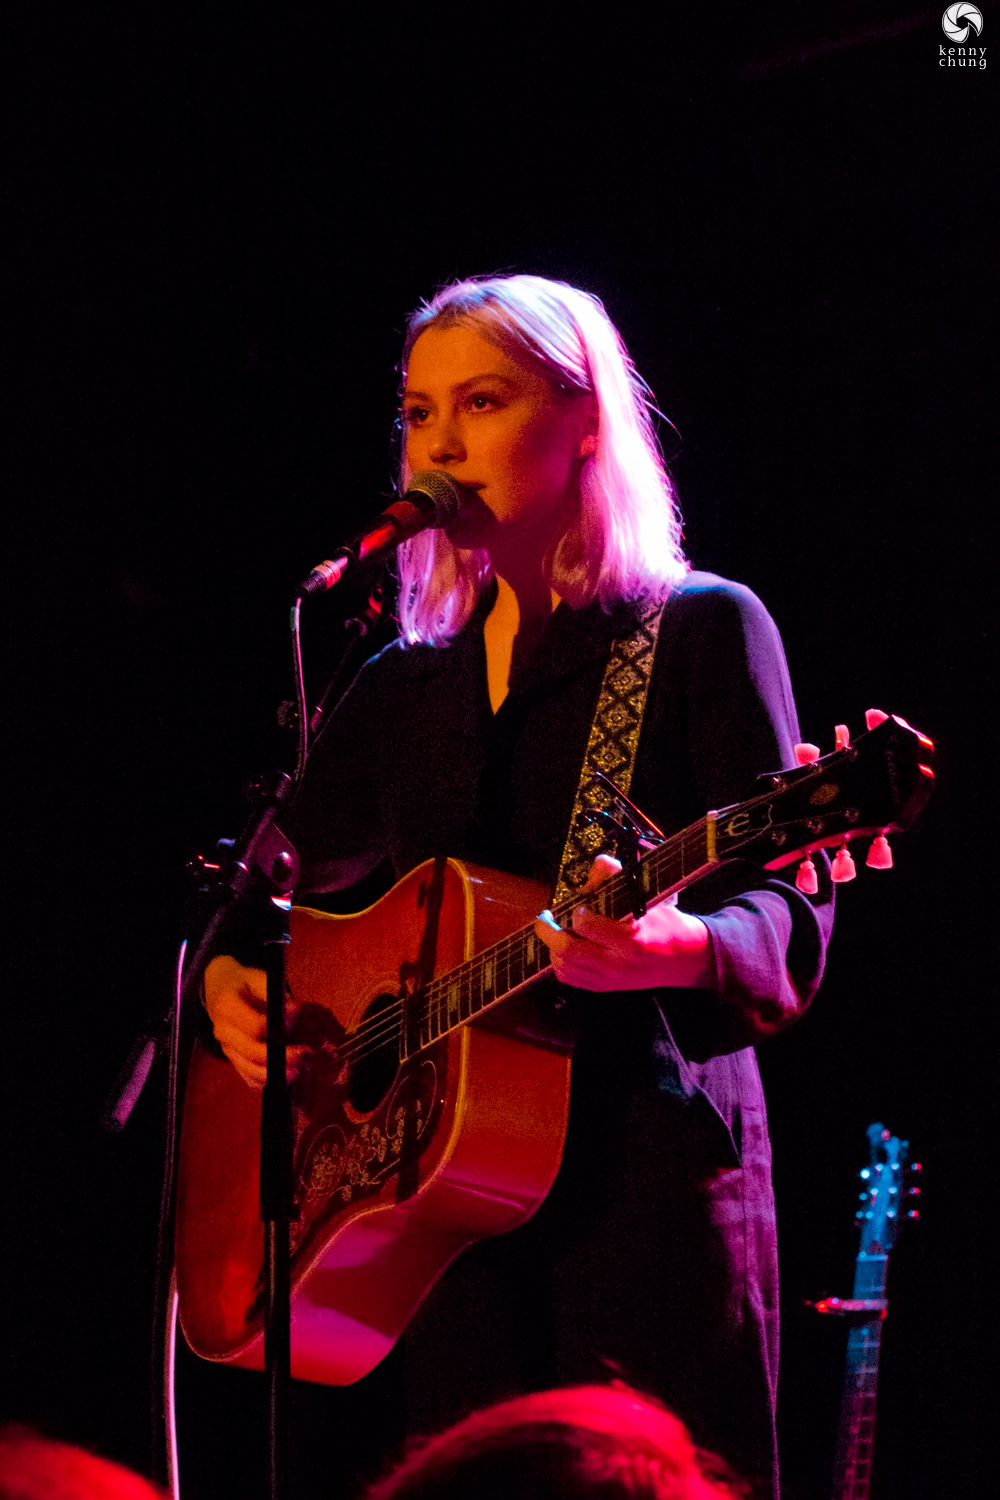 Phoebe Bridgers playing her Epiphone acoustic onstage at Bowery Ballroom